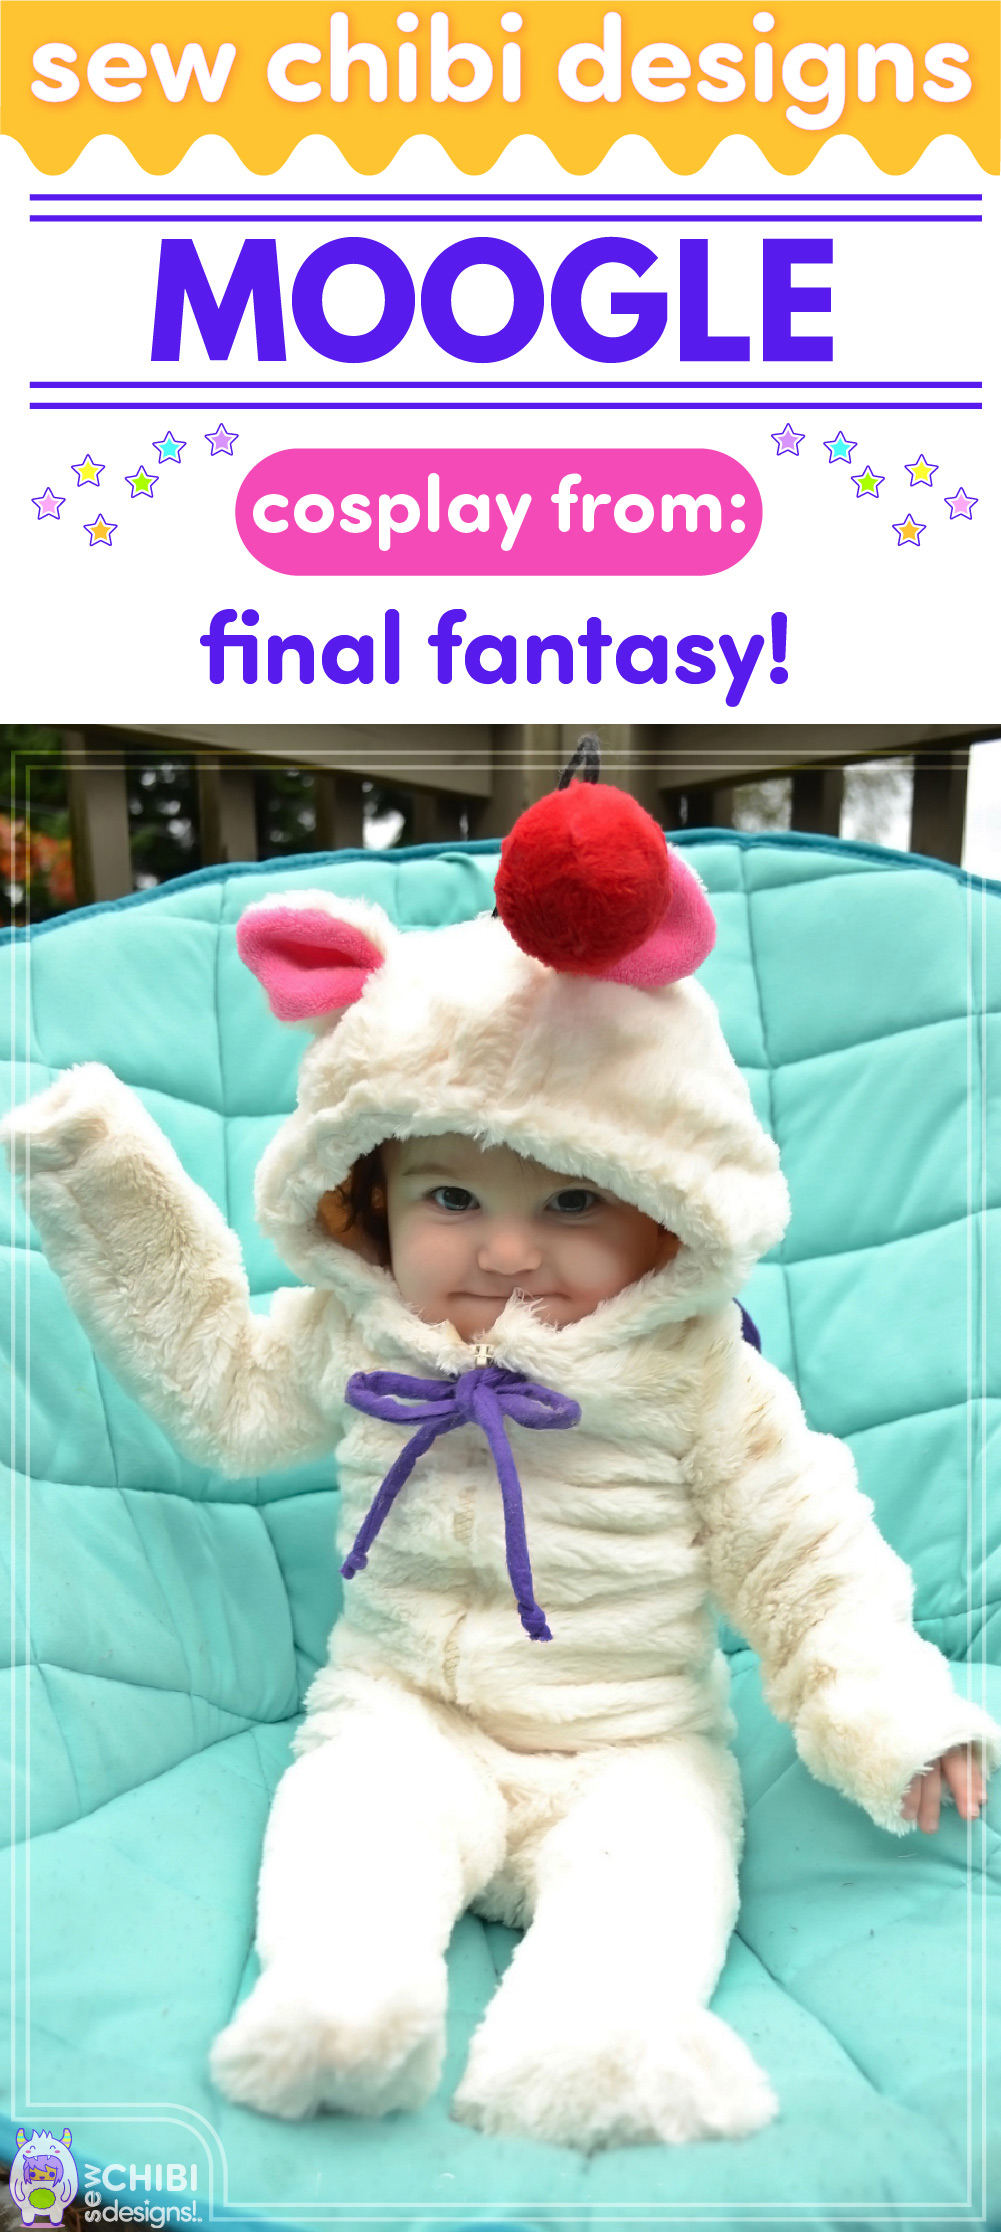 Moogle chibi cosplay from Final Fantasy sewn by Sew Chibi Designs for Sew Geeky